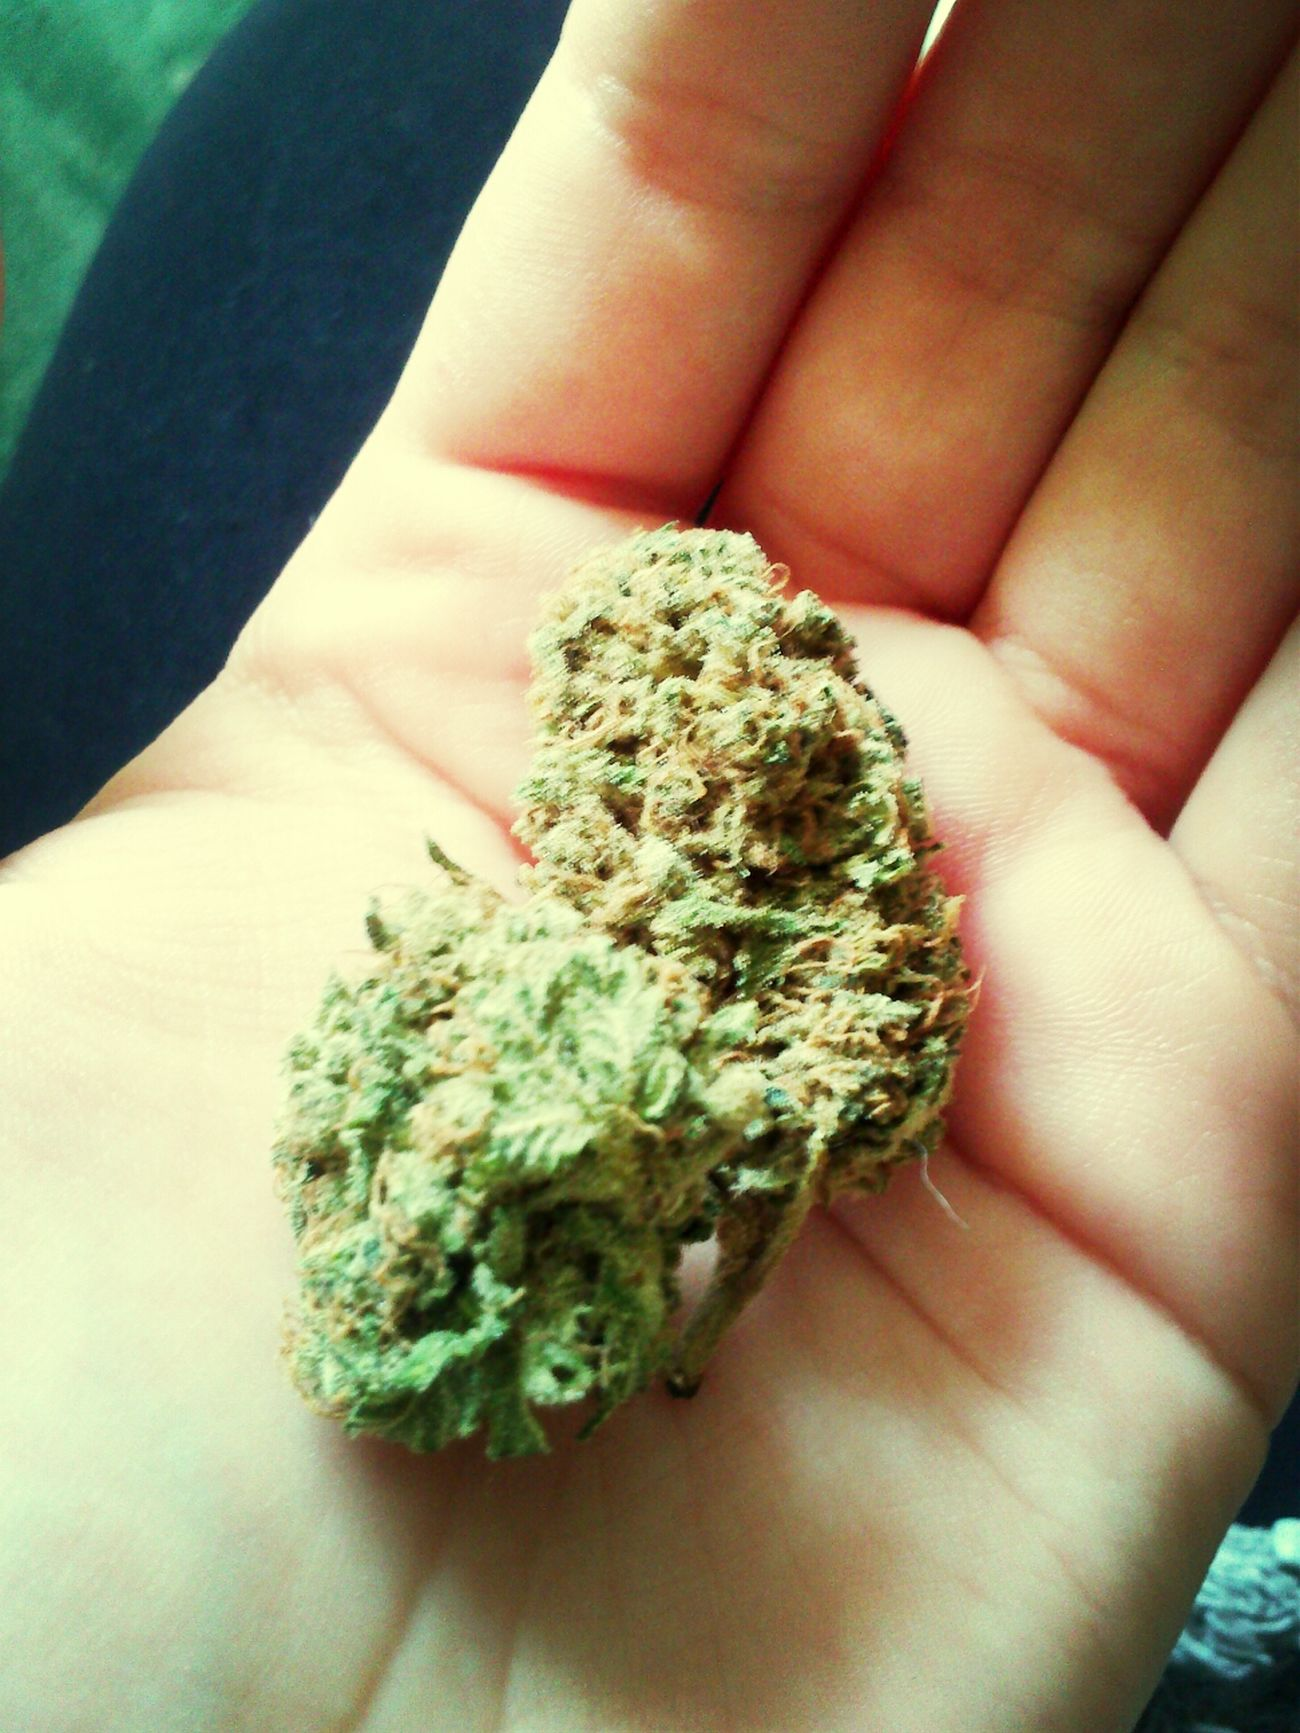 Weed #skéro Czechweed First Eyeem Photo